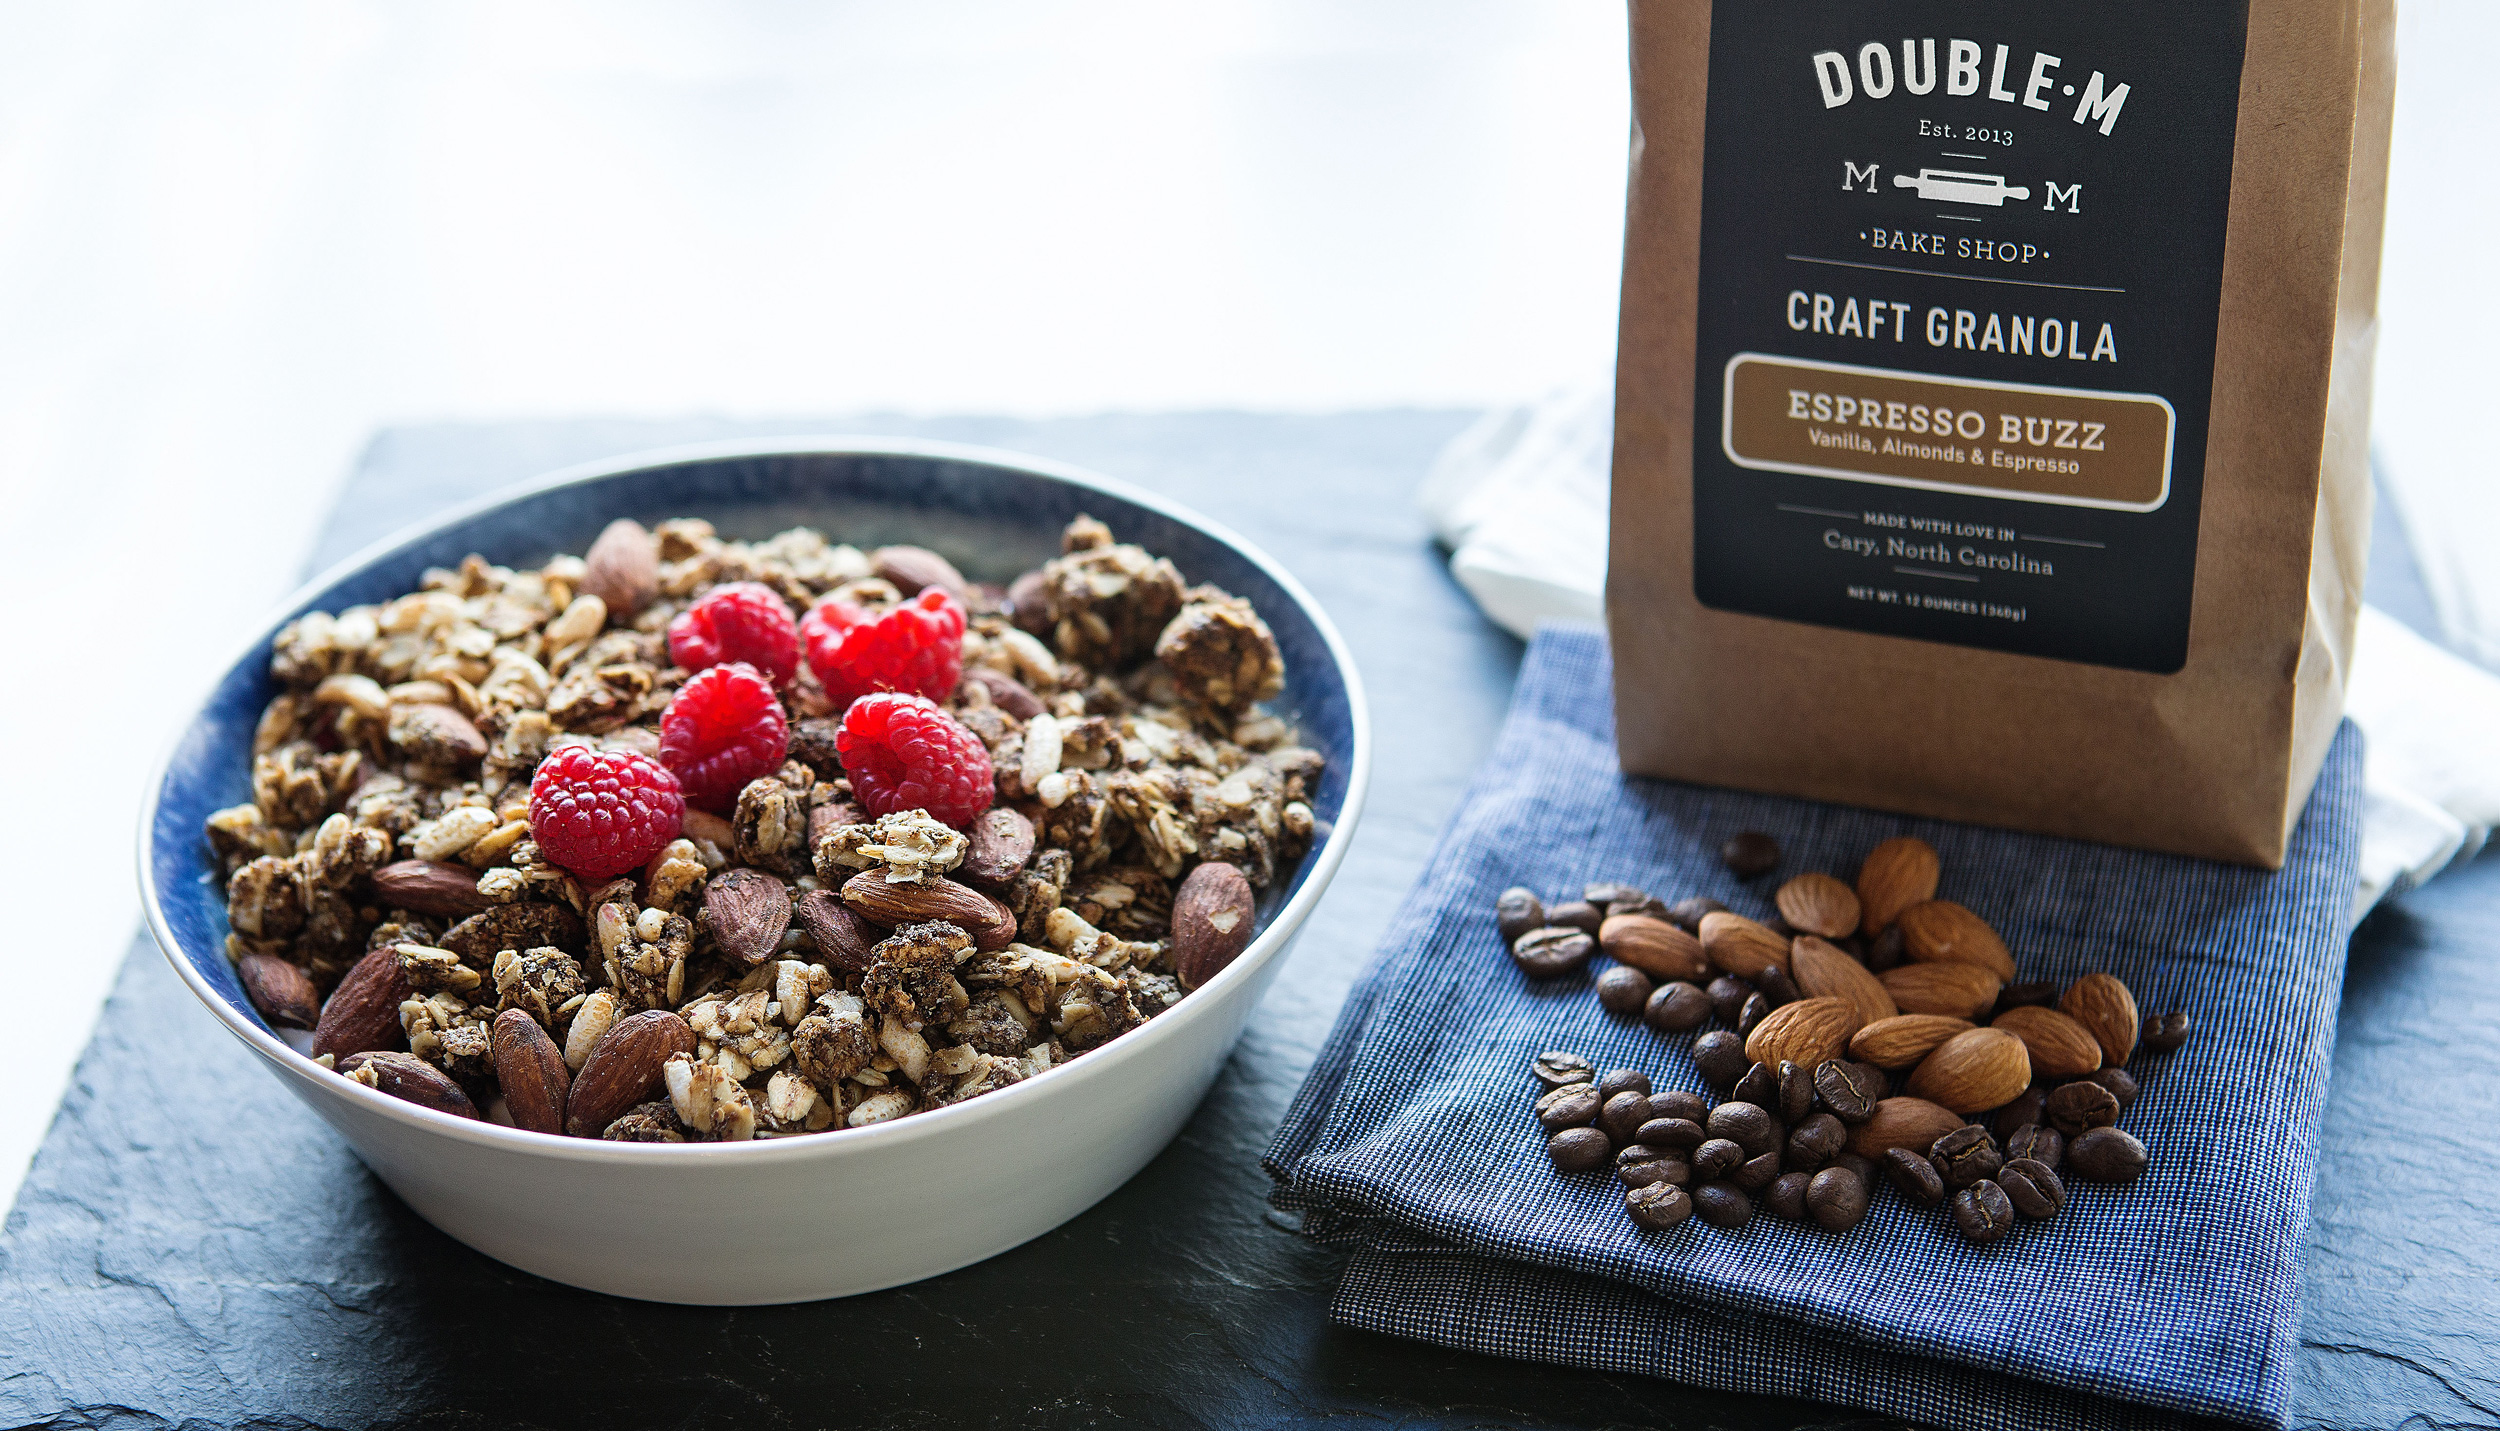 Double M Bake Shop Espresso Buzz granola and package